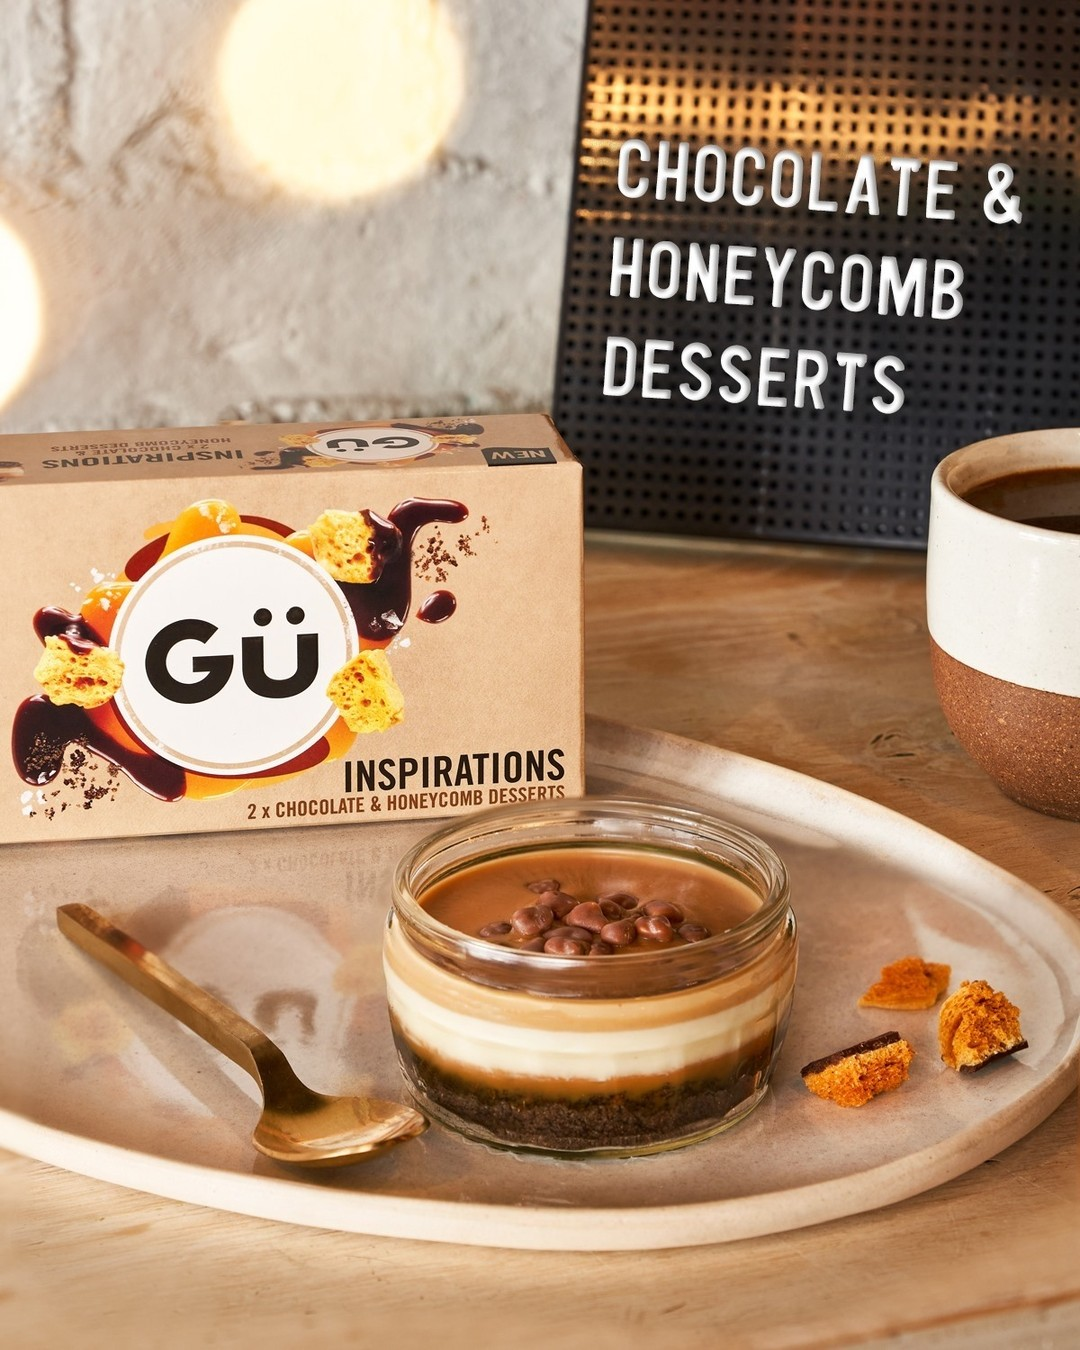 Choosing which Gu to have just got even harder... our new Gu Inspirations Cookies & Cream, Chocolate & Honeycomb and Red Velvet desserts available now in Sainsbury's & Waitrose stores!